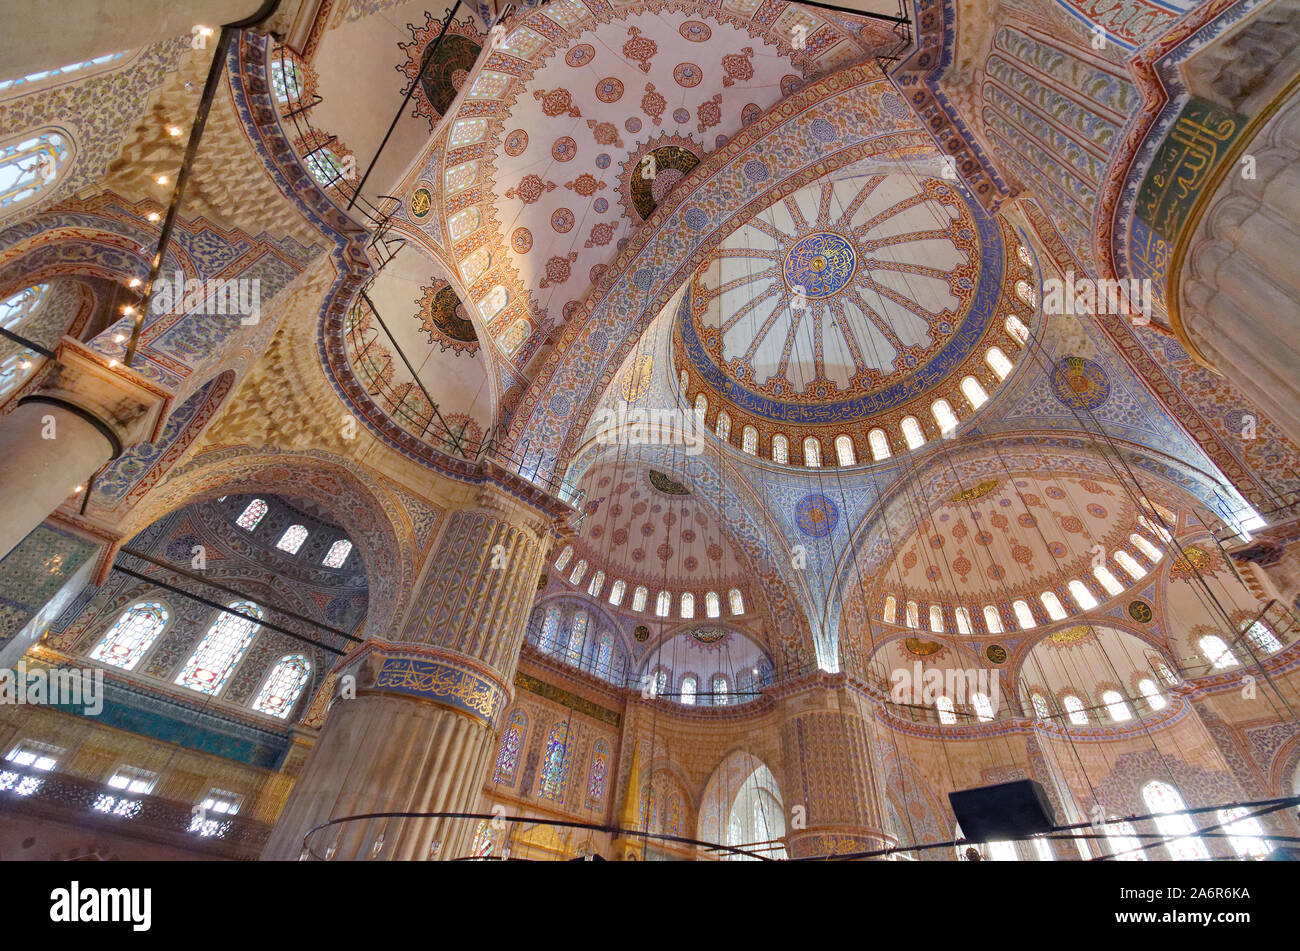 Interior of the Blue Mosque, Istanbul, Turkey. Stock Photo